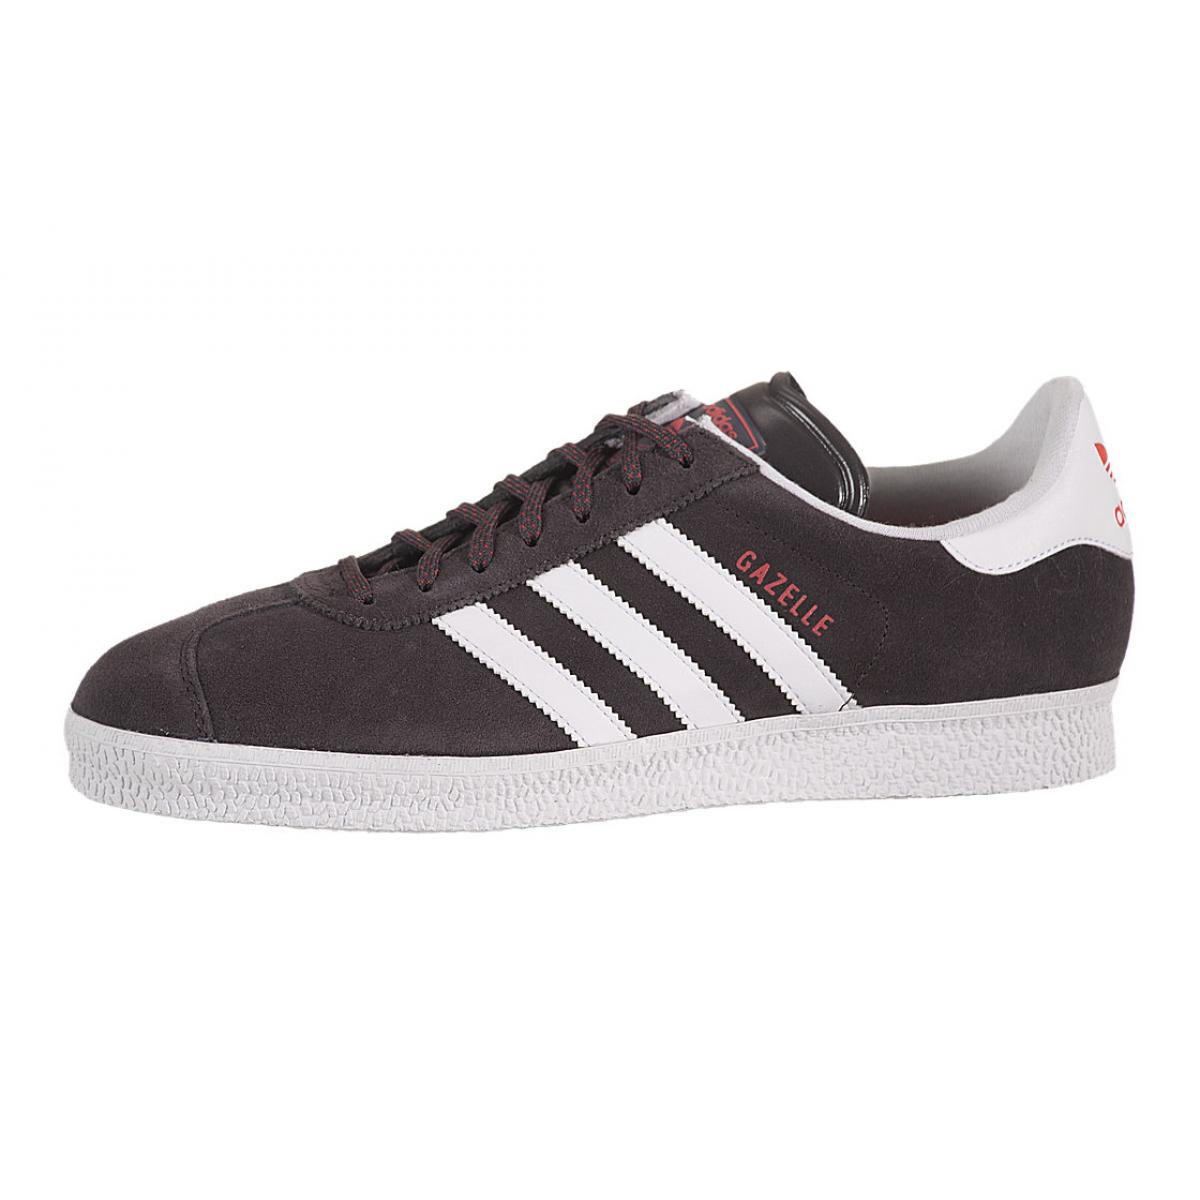 temperatura ambulanza giocare  Shop for Adidas Gazelle 2 Urban Trail / White / Light Red G60433 at lowest  prices in Trainingkicks.com